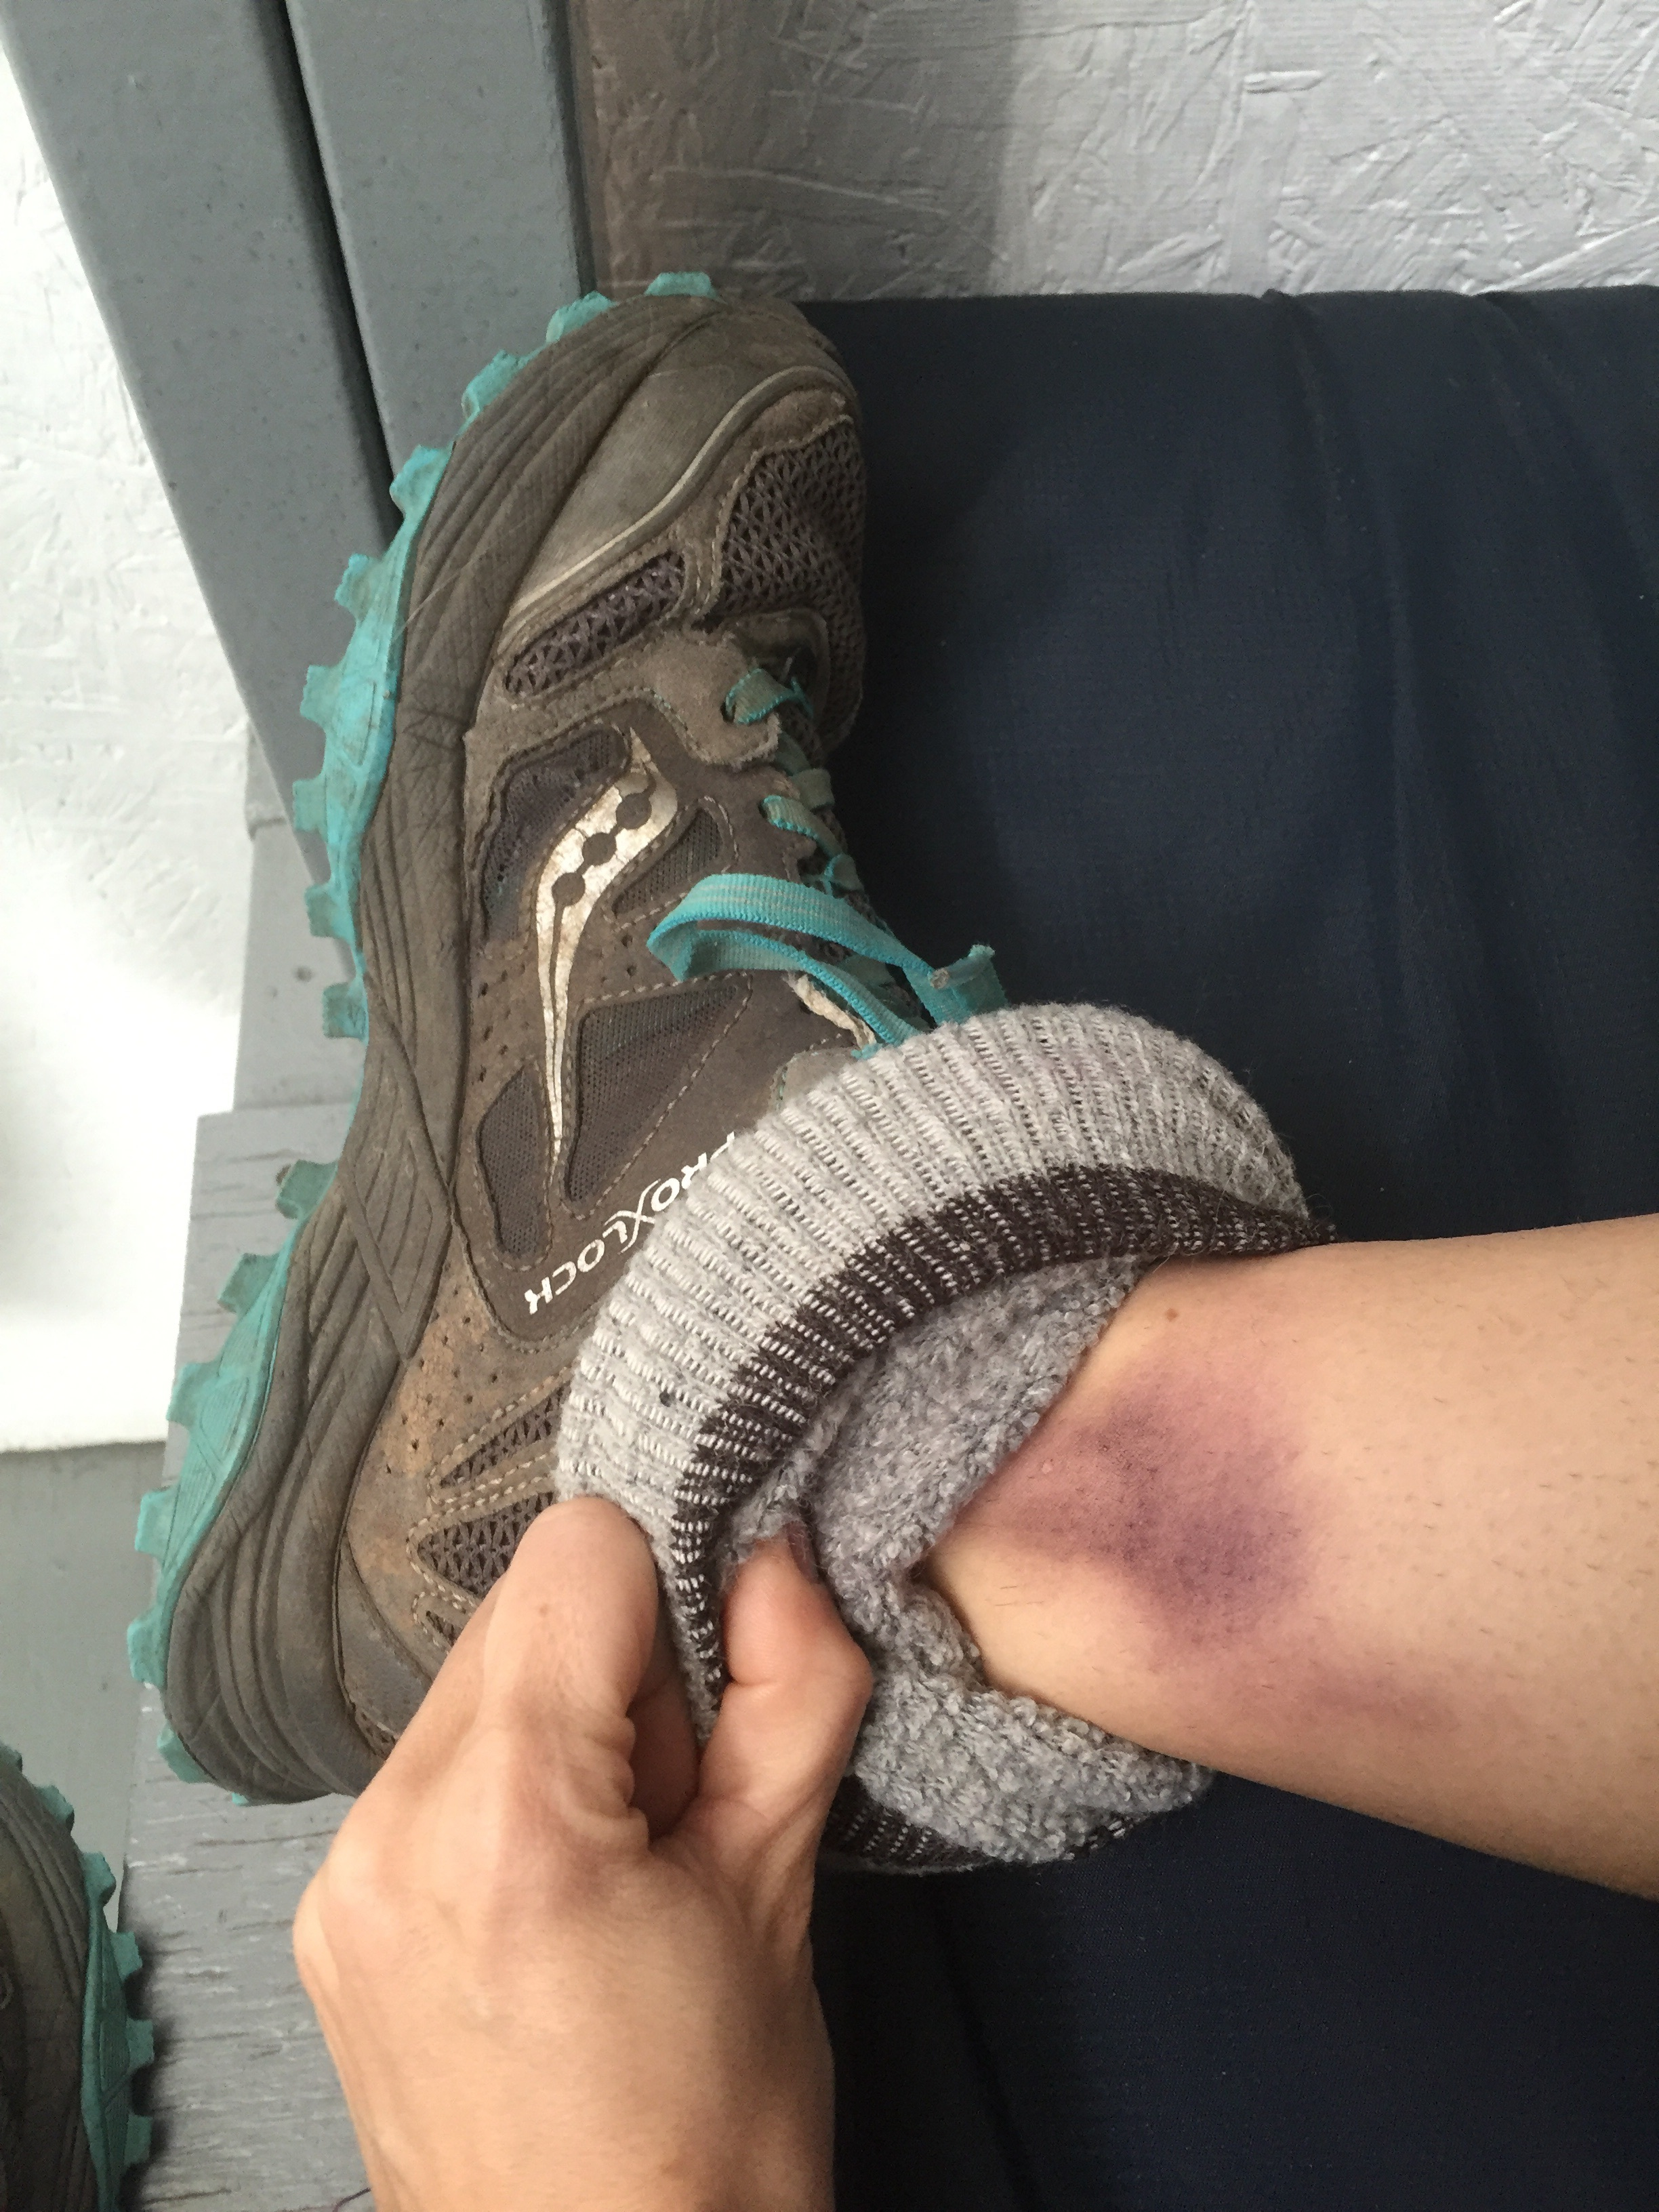 Just another day at WFR training - a badly bruised ankle indicating a sprain.